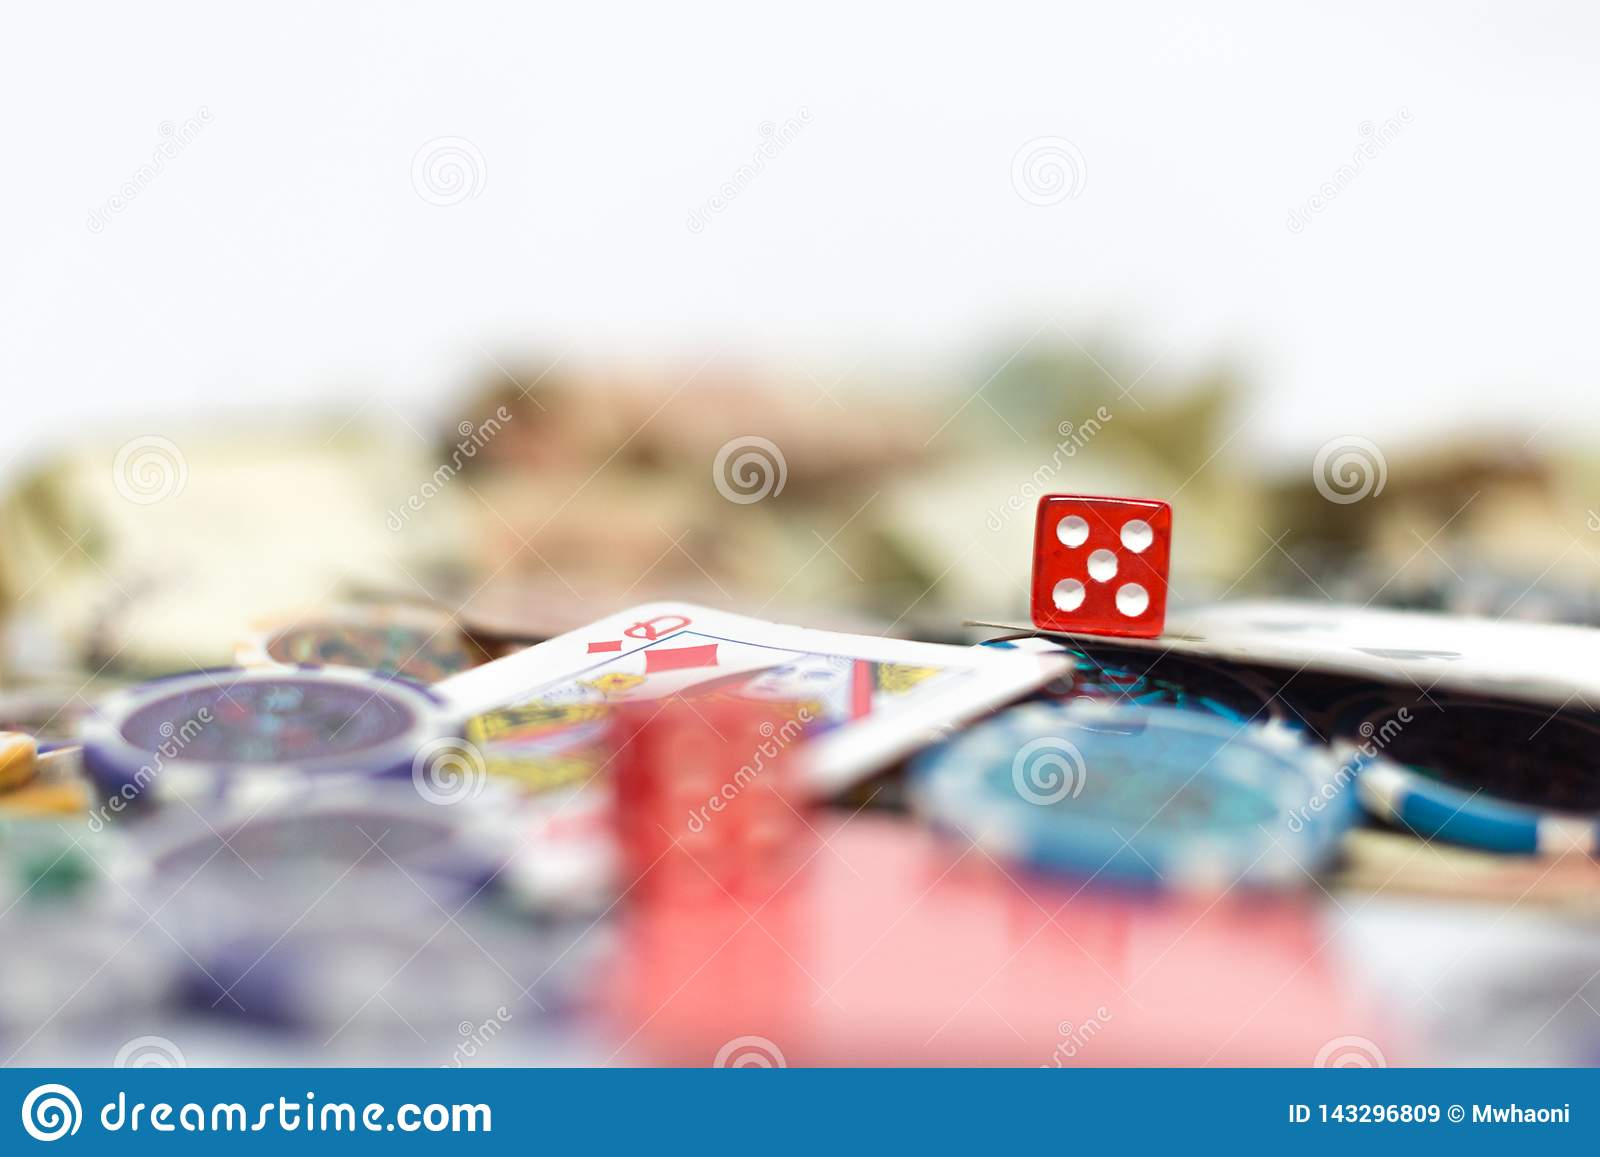 Poker table with cards, dice, poker chips and money in background